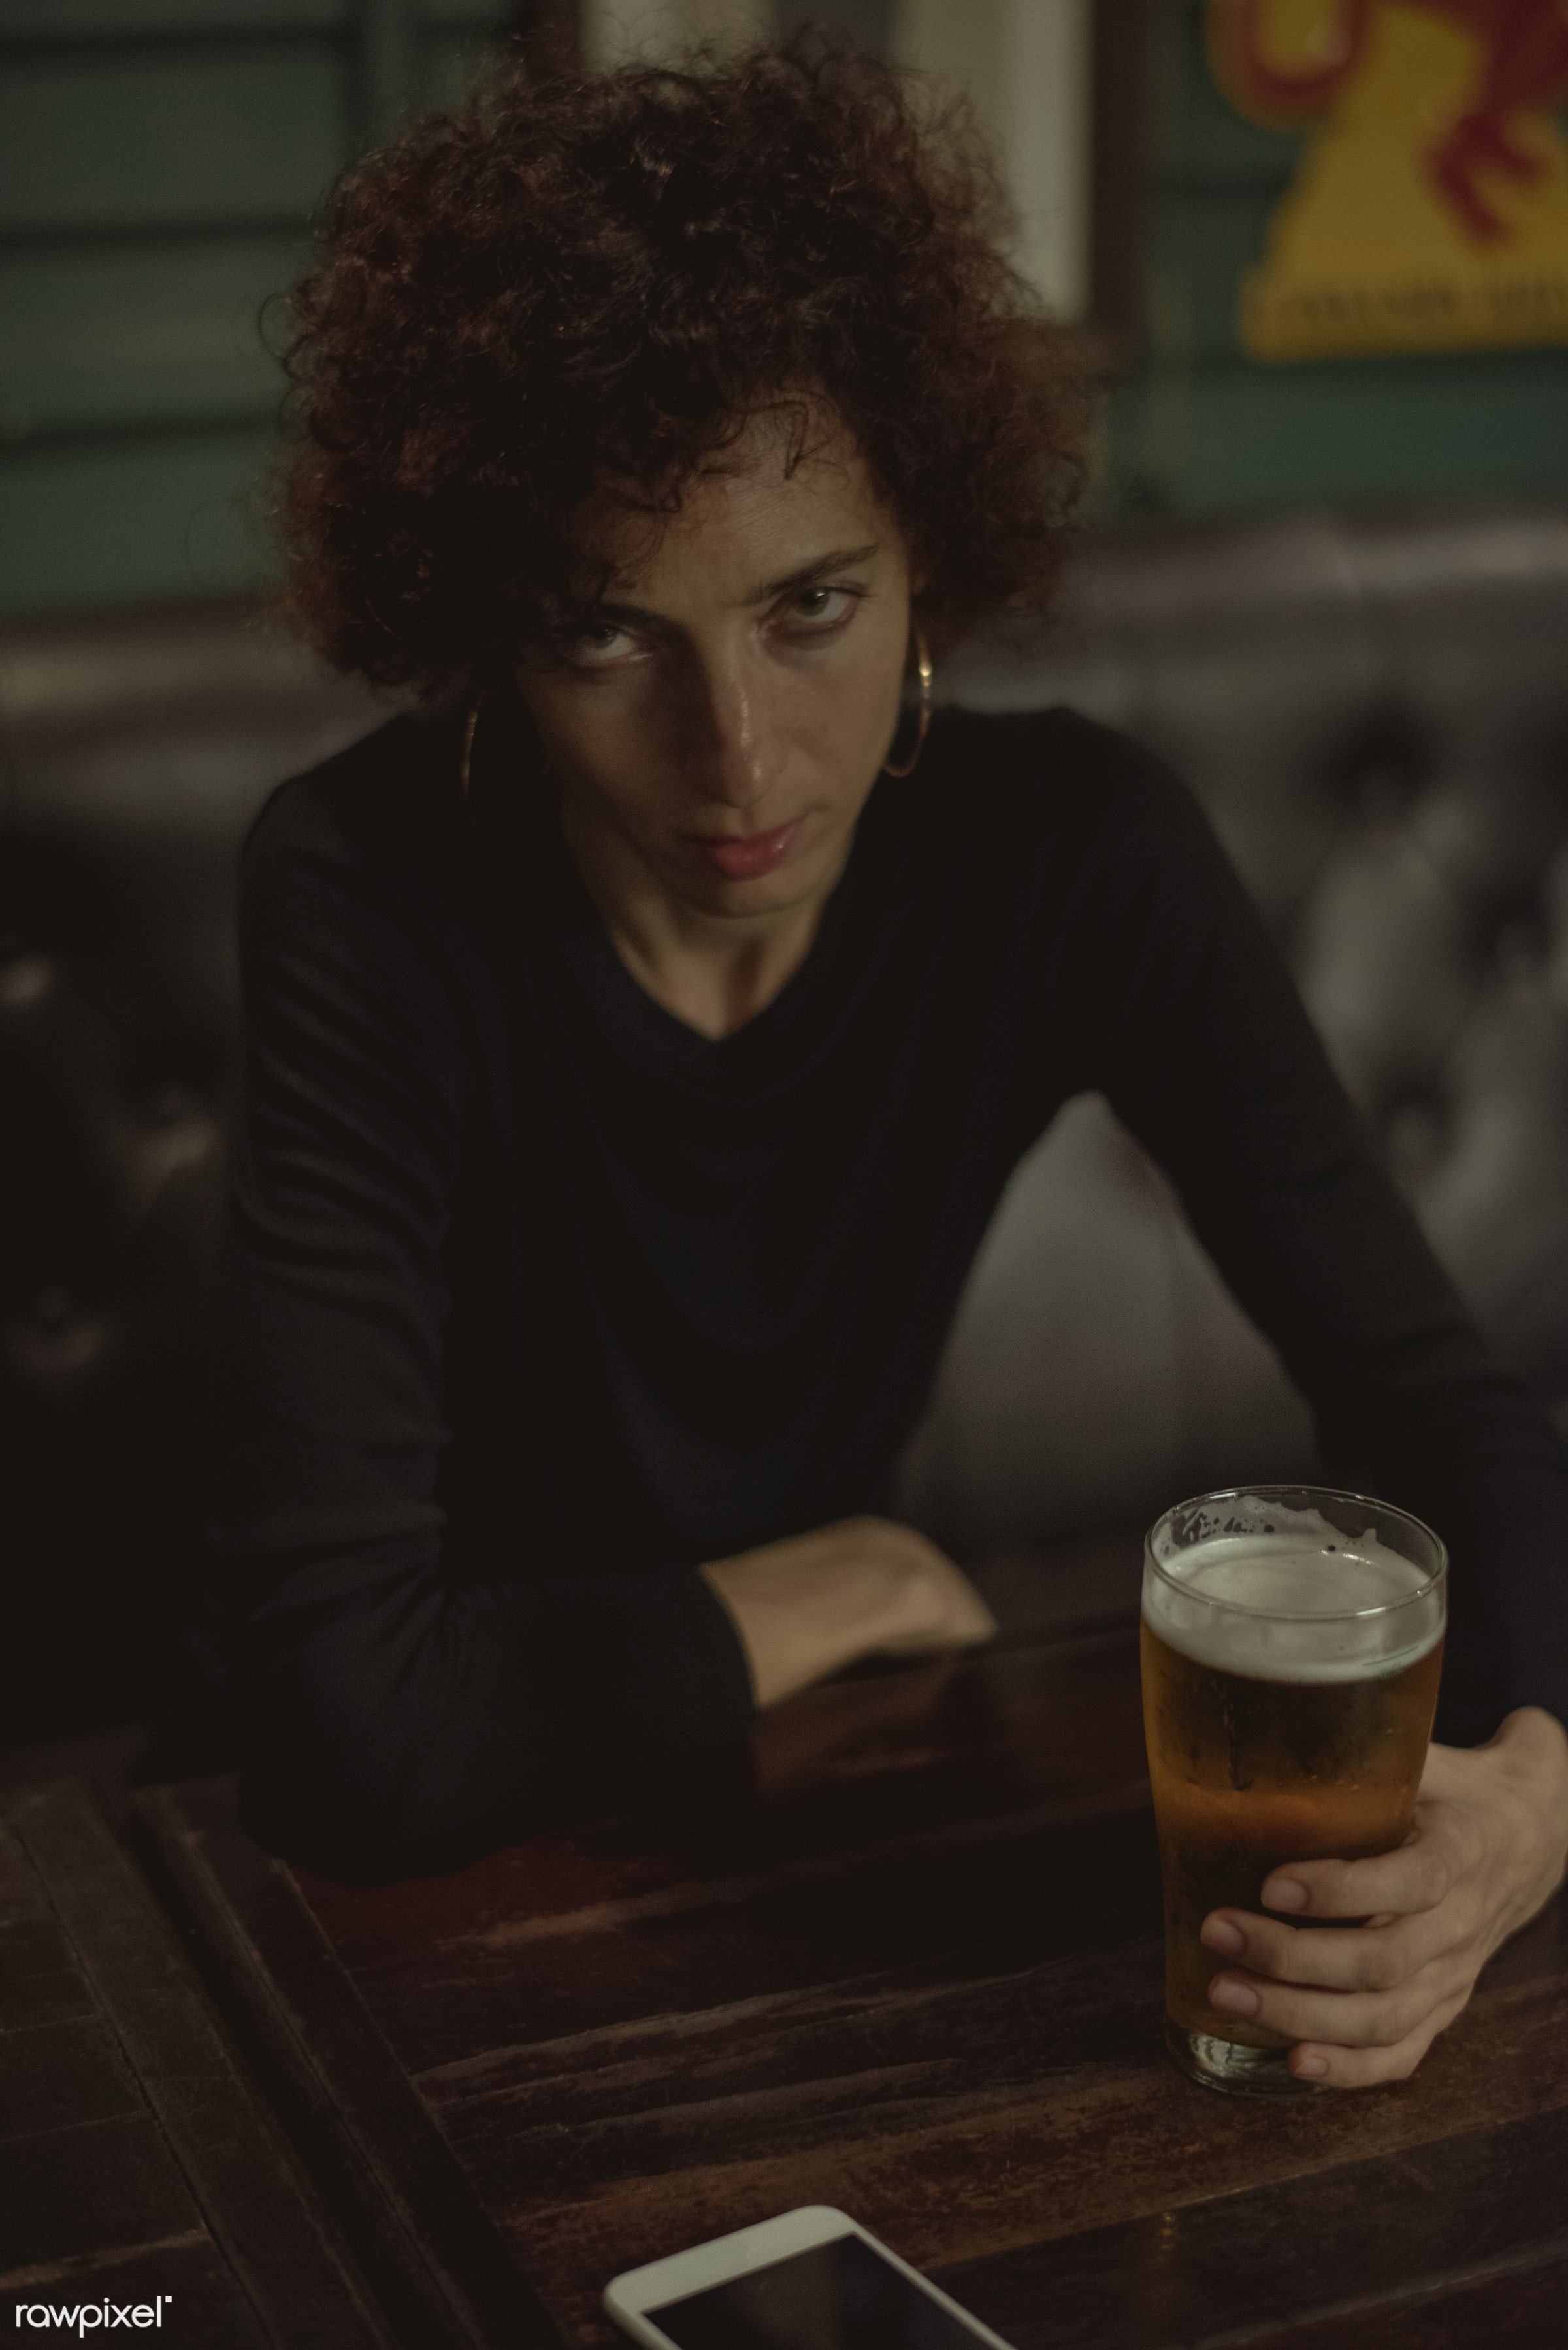 Woman having a beer at a bar - alcohol, alone, bar, beer, beverage, bored, communication, connection, curly hair, dark,...